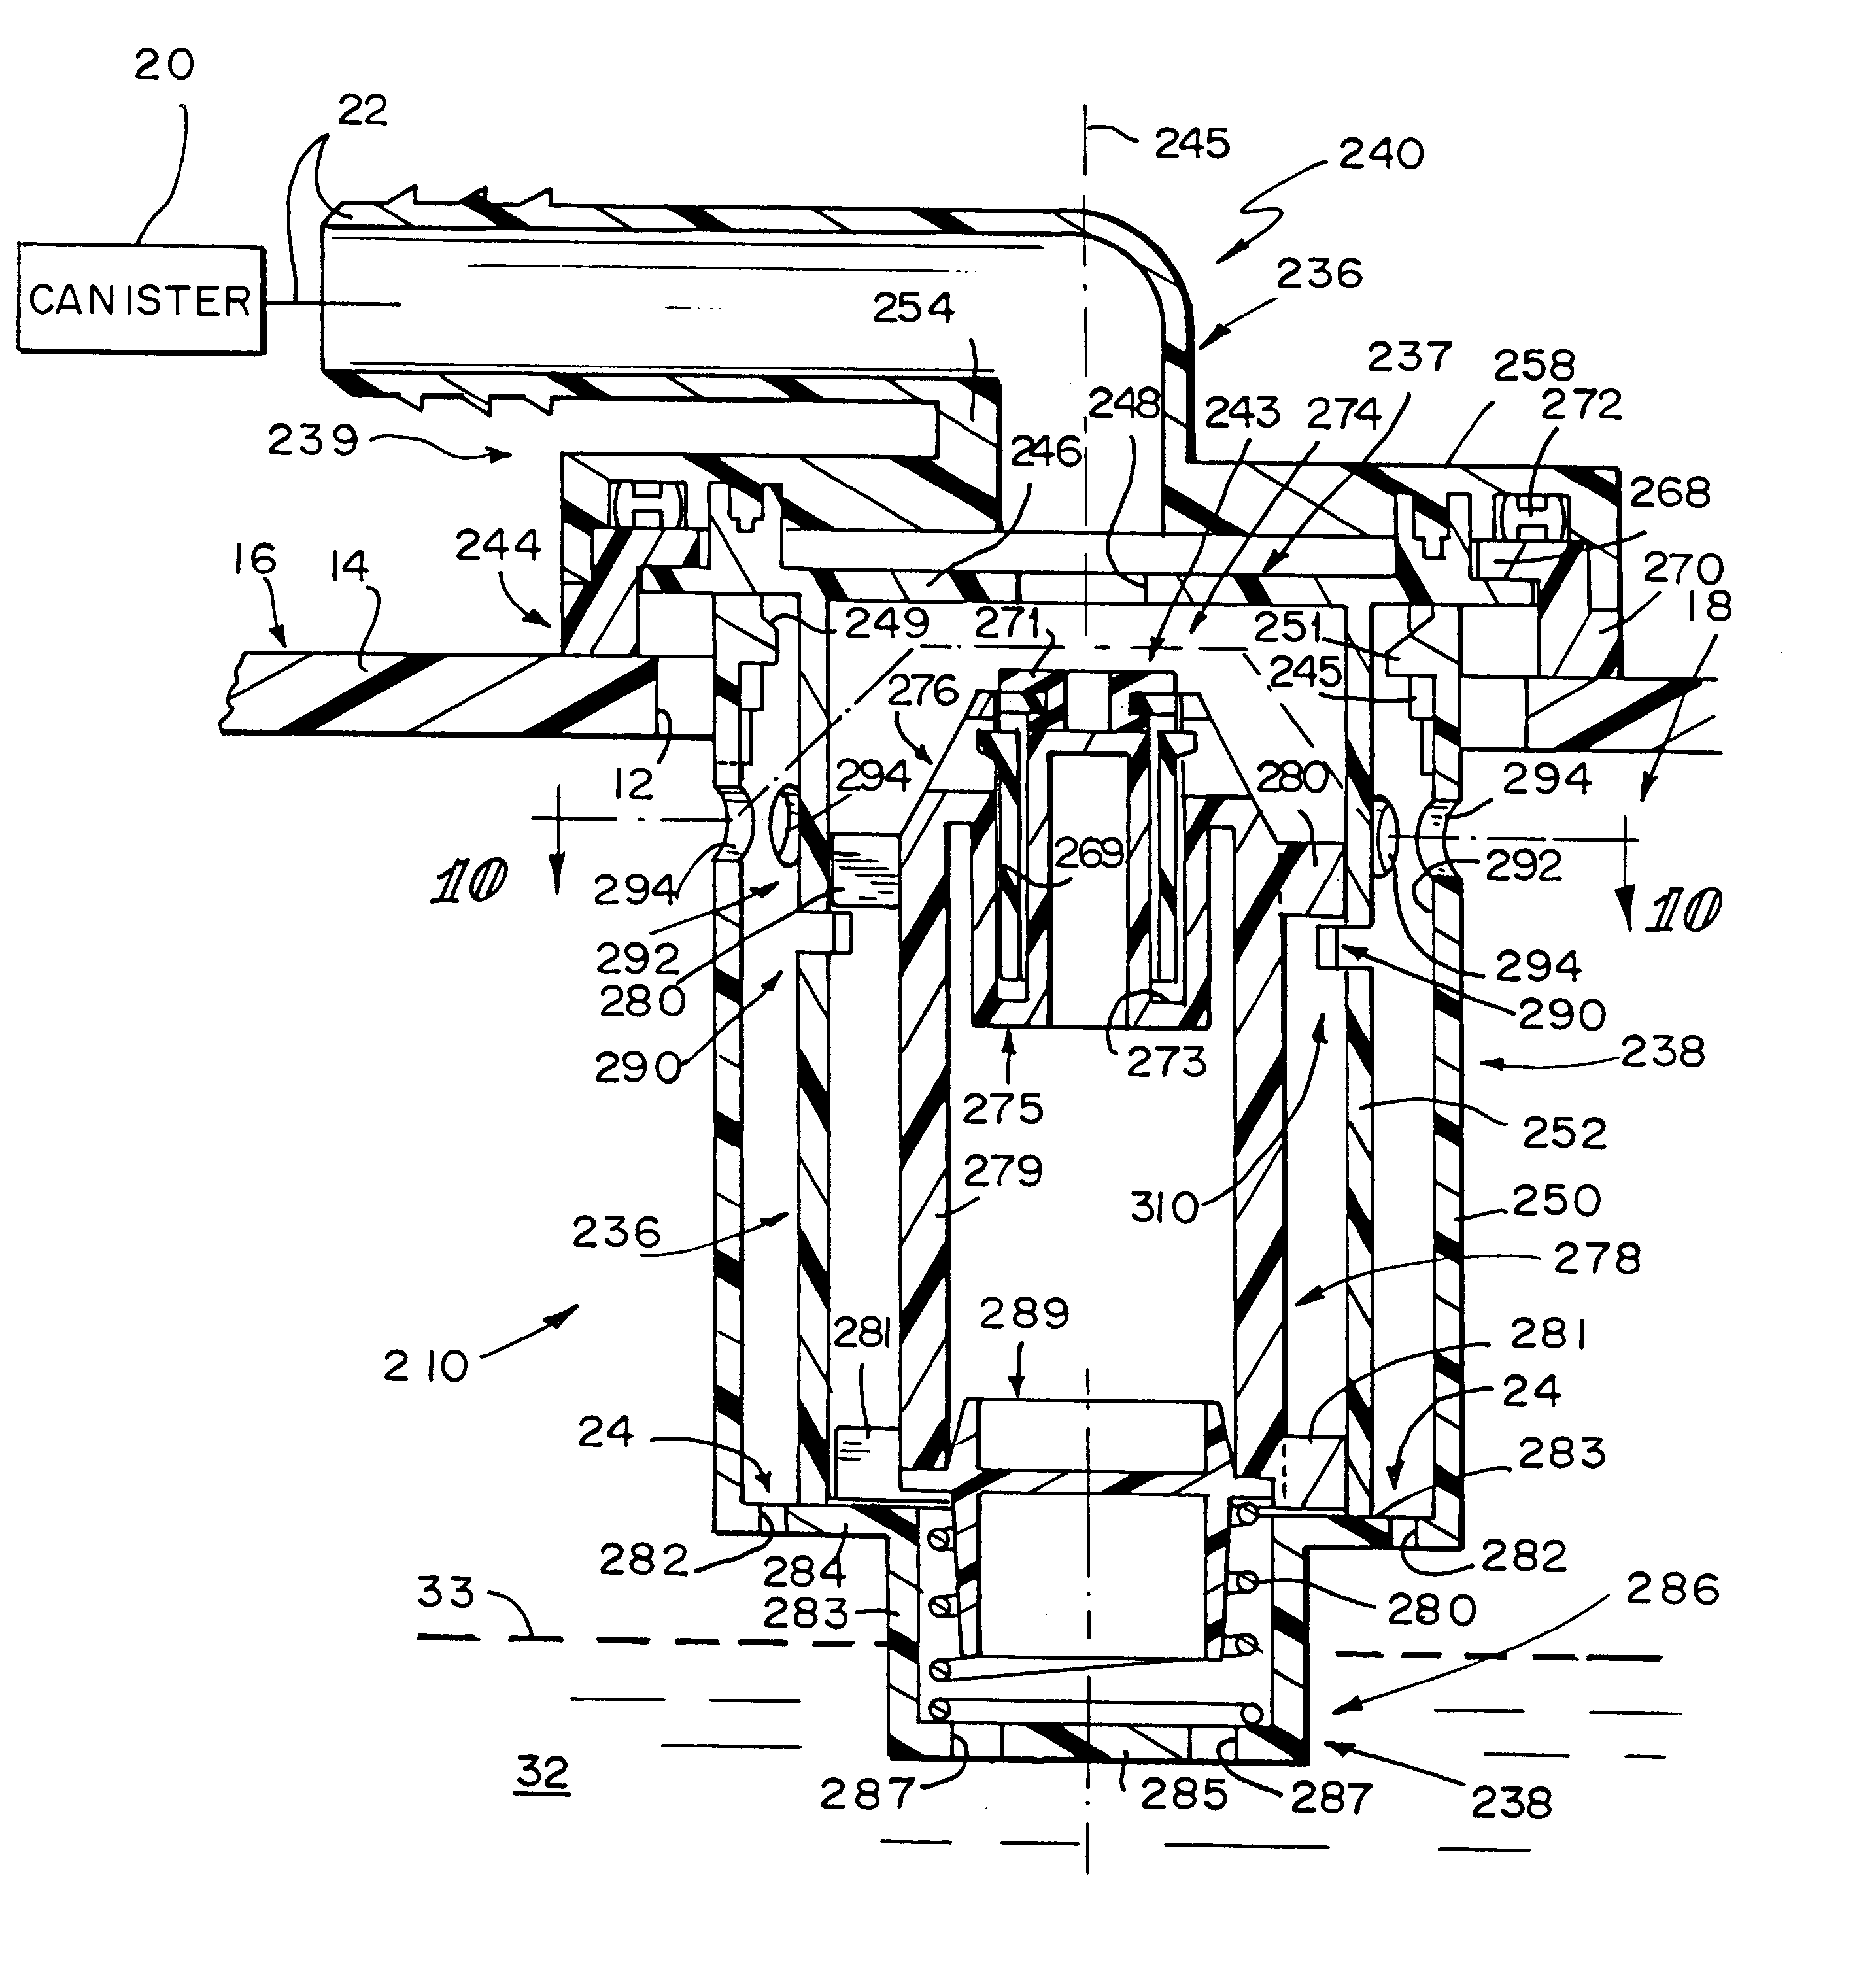 Billet Fuel Tank Vent Filter Auto Electrical Wiring Diagram Tig Welding Handpiece Related With